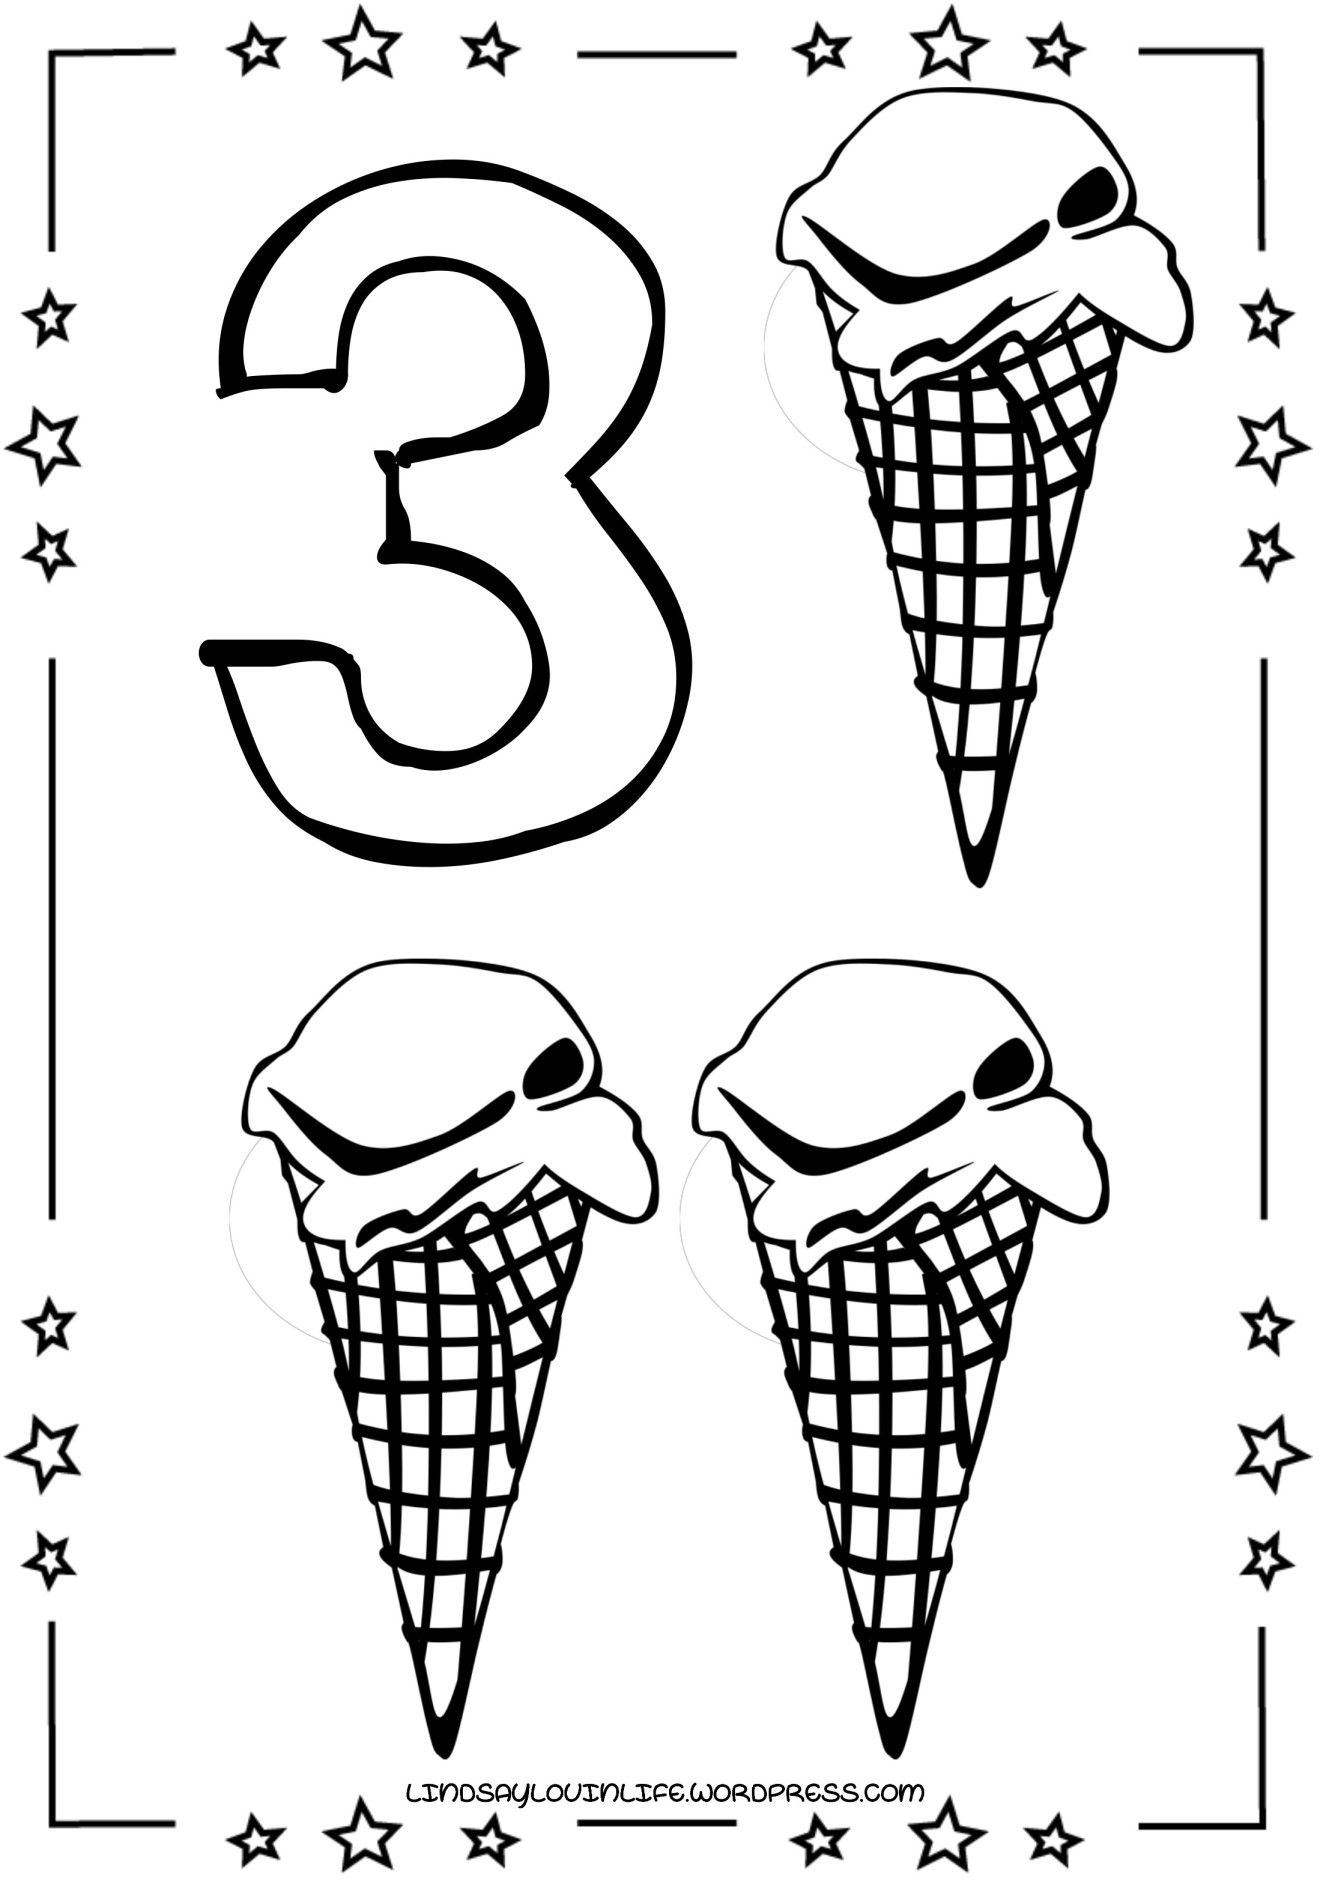 Ice Cream Numbers Colouring Page – Number 3